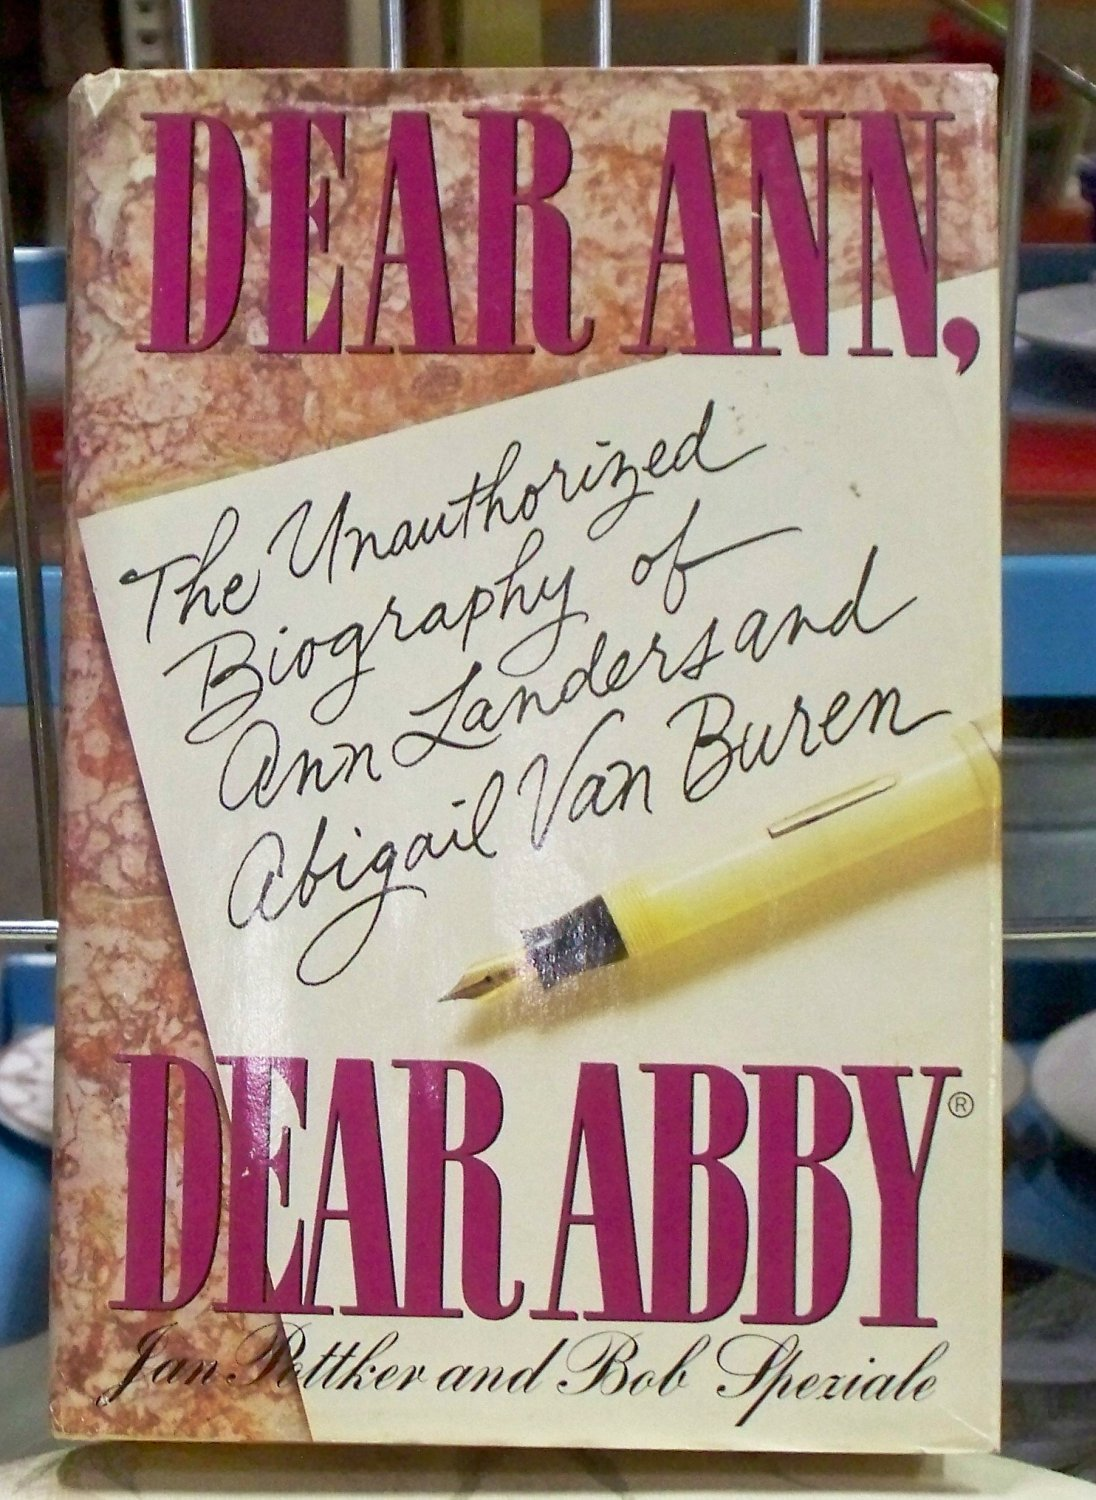 Dear Ann, Dear Abby, Jan Pottker and Bob Speziale